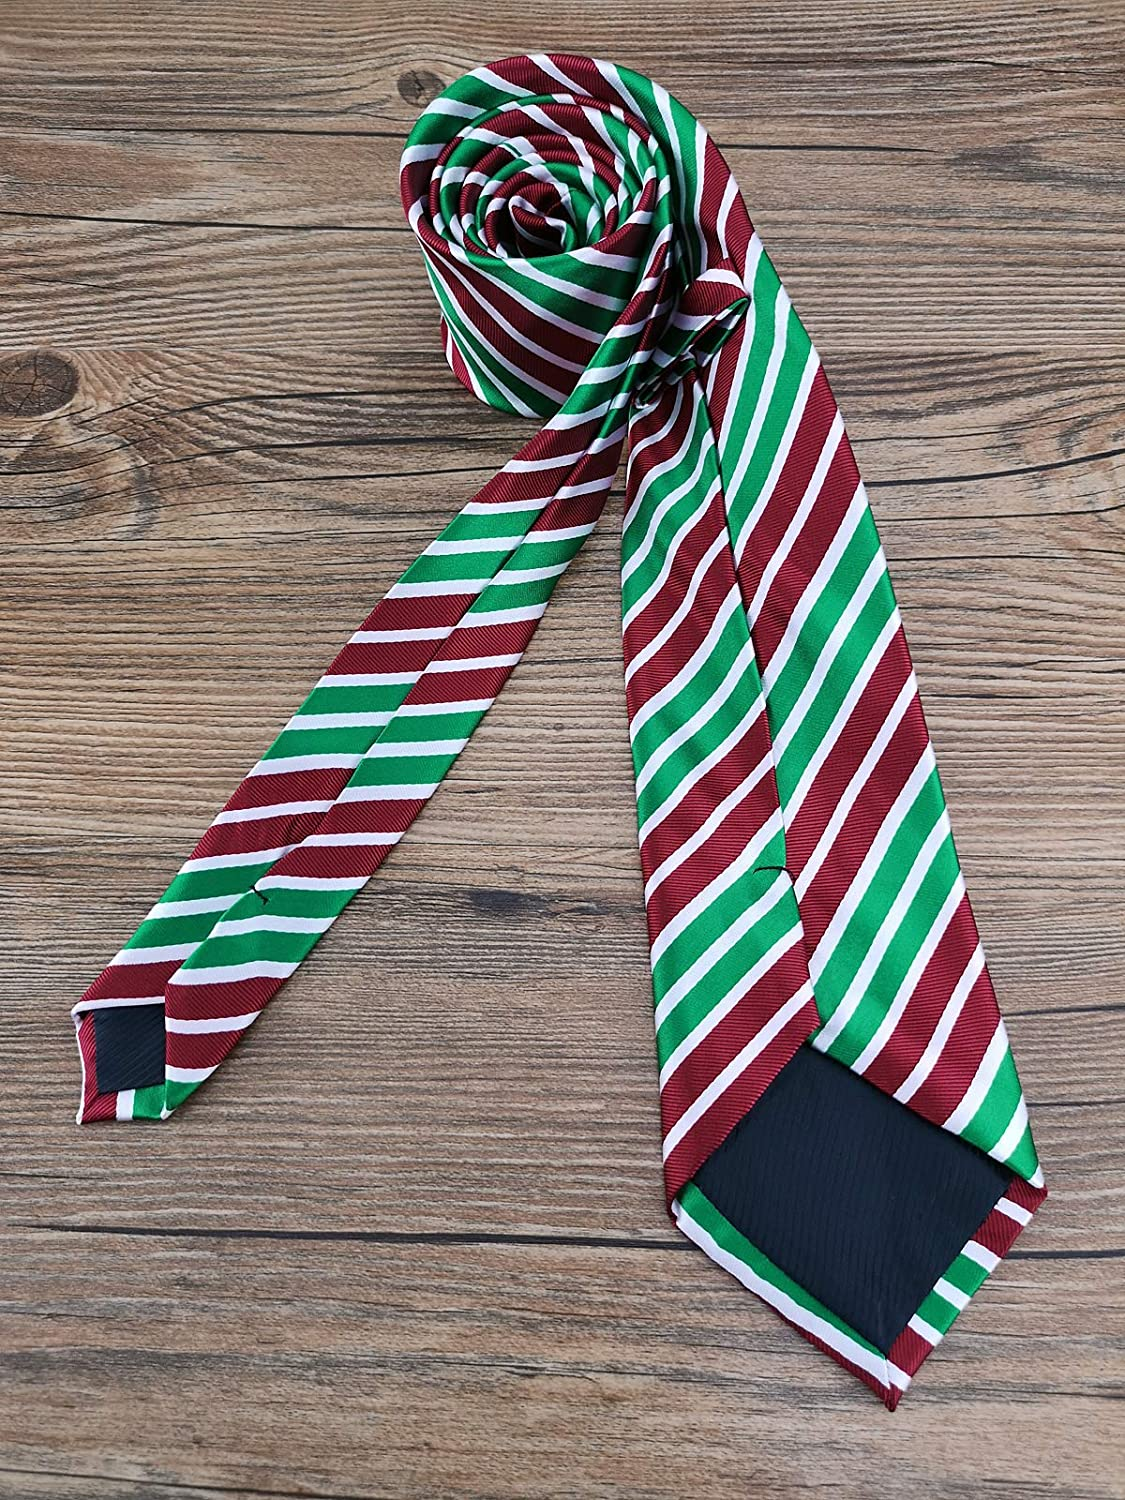 PenSee Christmas Ties Novelty Patteren Jacquard Ties for Holiday Gift Various Style